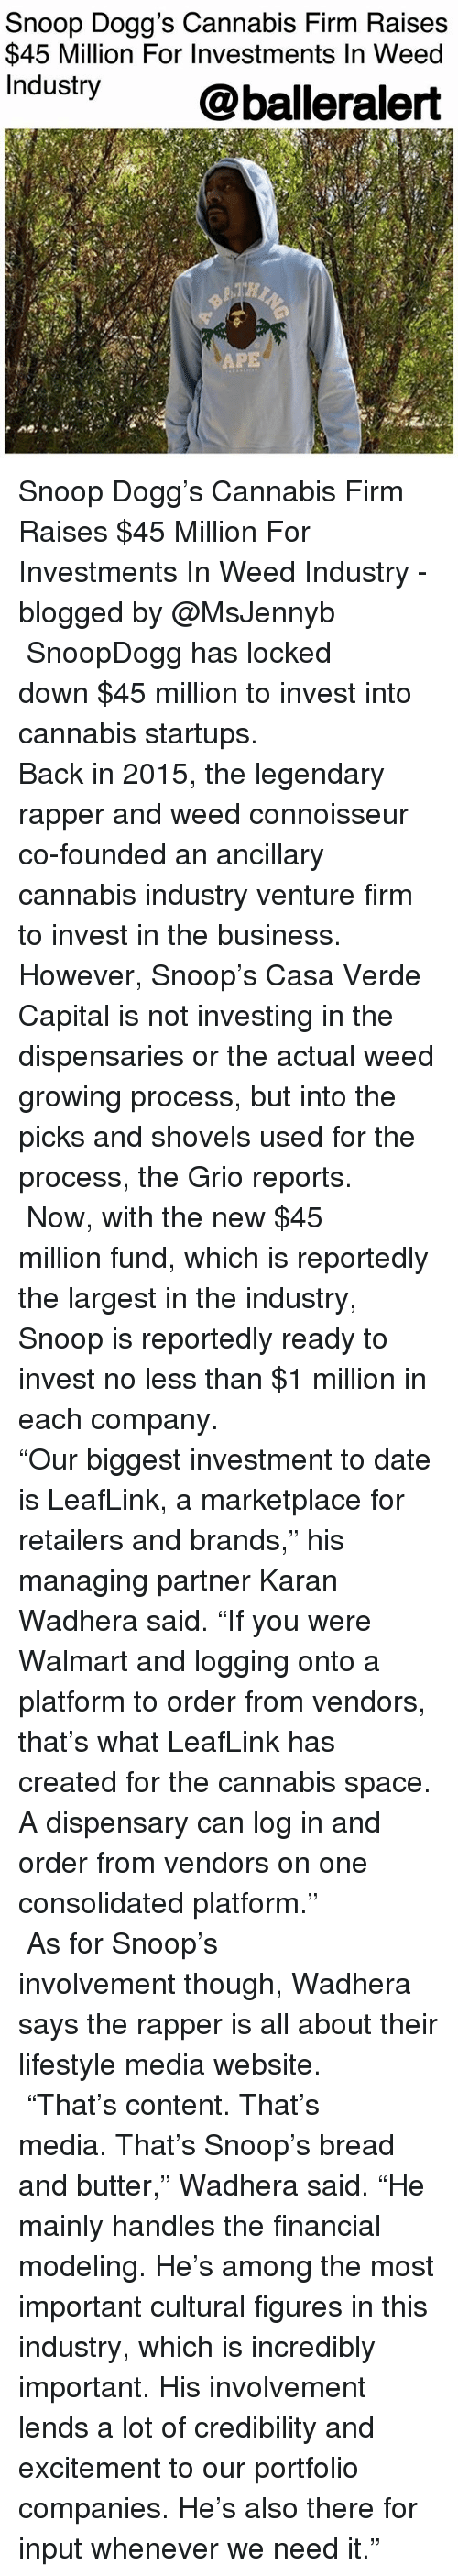 "connoisseur: Snoop Dogg's Cannabis Firm Raises  $45 Million For Investments In Weed  Industry @balleralert  APE Snoop Dogg's Cannabis Firm Raises $45 Million For Investments In Weed Industry - blogged by @MsJennyb ⠀⠀⠀⠀⠀⠀⠀⠀⠀ ⠀⠀⠀⠀⠀⠀⠀⠀⠀ SnoopDogg has locked down $45 million to invest into cannabis startups. ⠀⠀⠀⠀⠀⠀⠀⠀⠀ ⠀⠀⠀⠀⠀⠀⠀⠀⠀ Back in 2015, the legendary rapper and weed connoisseur co-founded an ancillary cannabis industry venture firm to invest in the business. However, Snoop's Casa Verde Capital is not investing in the dispensaries or the actual weed growing process, but into the picks and shovels used for the process, the Grio reports. ⠀⠀⠀⠀⠀⠀⠀⠀⠀ ⠀⠀⠀⠀⠀⠀⠀⠀⠀ Now, with the new $45 million fund, which is reportedly the largest in the industry, Snoop is reportedly ready to invest no less than $1 million in each company. ⠀⠀⠀⠀⠀⠀⠀⠀⠀ ⠀⠀⠀⠀⠀⠀⠀⠀⠀ ""Our biggest investment to date is LeafLink, a marketplace for retailers and brands,"" his managing partner Karan Wadhera said. ""If you were Walmart and logging onto a platform to order from vendors, that's what LeafLink has created for the cannabis space. A dispensary can log in and order from vendors on one consolidated platform."" ⠀⠀⠀⠀⠀⠀⠀⠀⠀ ⠀⠀⠀⠀⠀⠀⠀⠀⠀ As for Snoop's involvement though, Wadhera says the rapper is all about their lifestyle media website. ⠀⠀⠀⠀⠀⠀⠀⠀⠀ ⠀⠀⠀⠀⠀⠀⠀⠀⠀ ""That's content. That's media. That's Snoop's bread and butter,"" Wadhera said. ""He mainly handles the financial modeling. He's among the most important cultural figures in this industry, which is incredibly important. His involvement lends a lot of credibility and excitement to our portfolio companies. He's also there for input whenever we need it."""